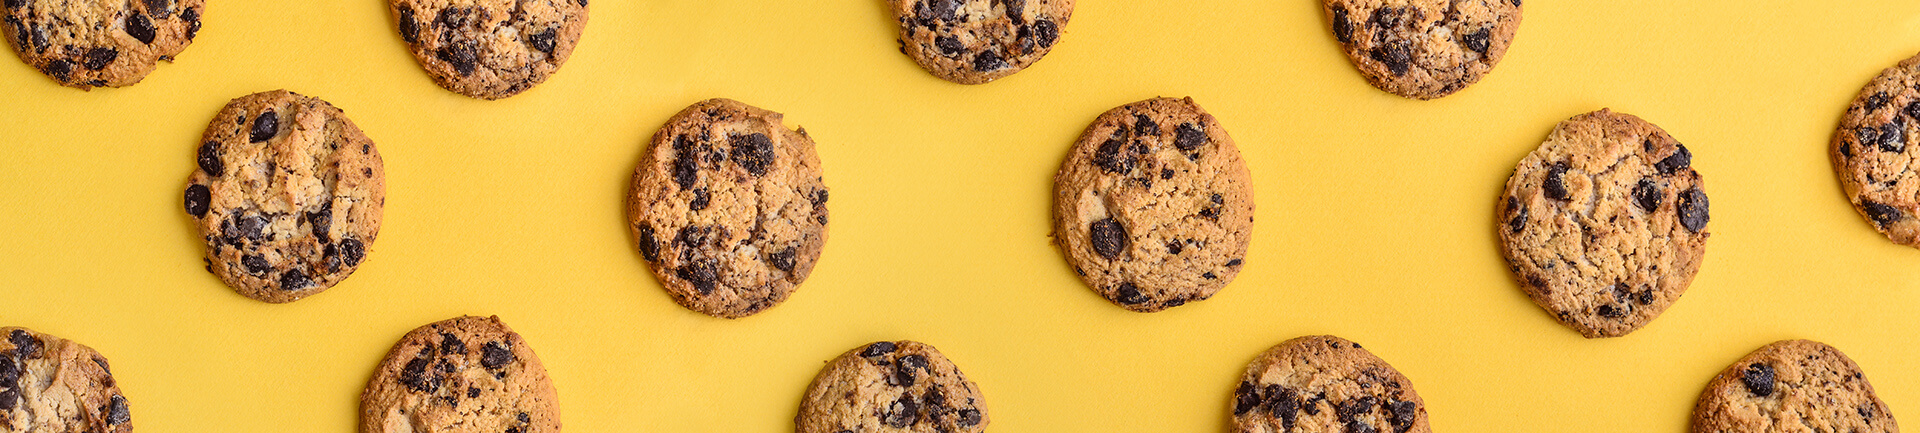 Chocolate chip cookies on yellow background